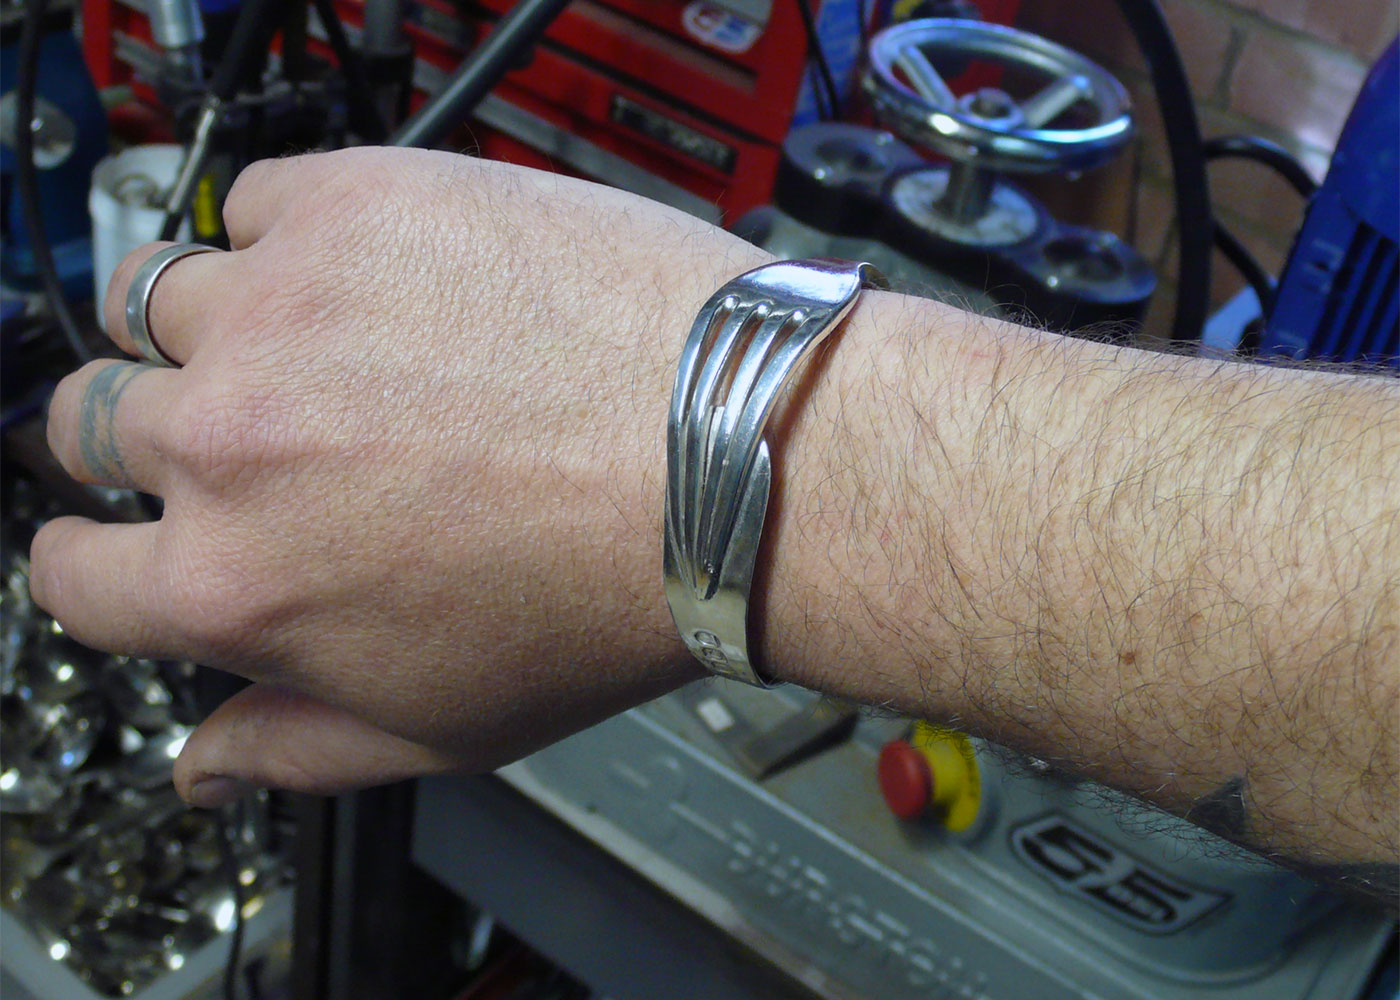 silver fork bracelets and cuffs in production at the workshop